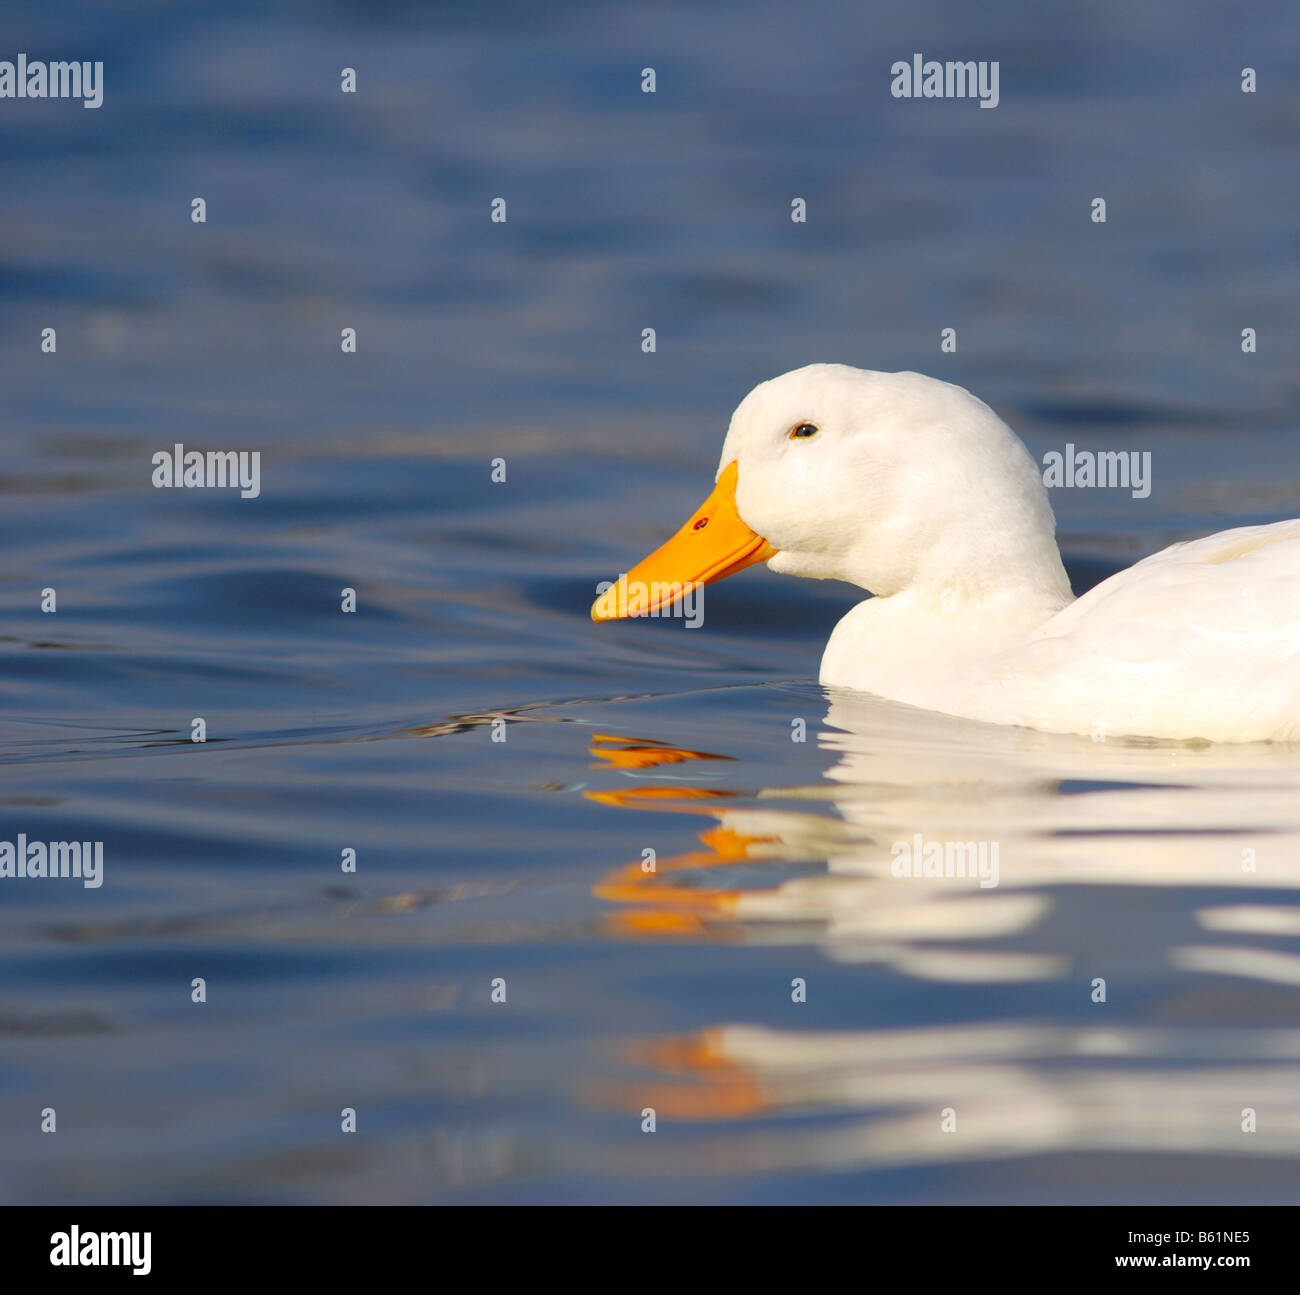 Beautiful white duck on choppy clear blue water - Stock Image